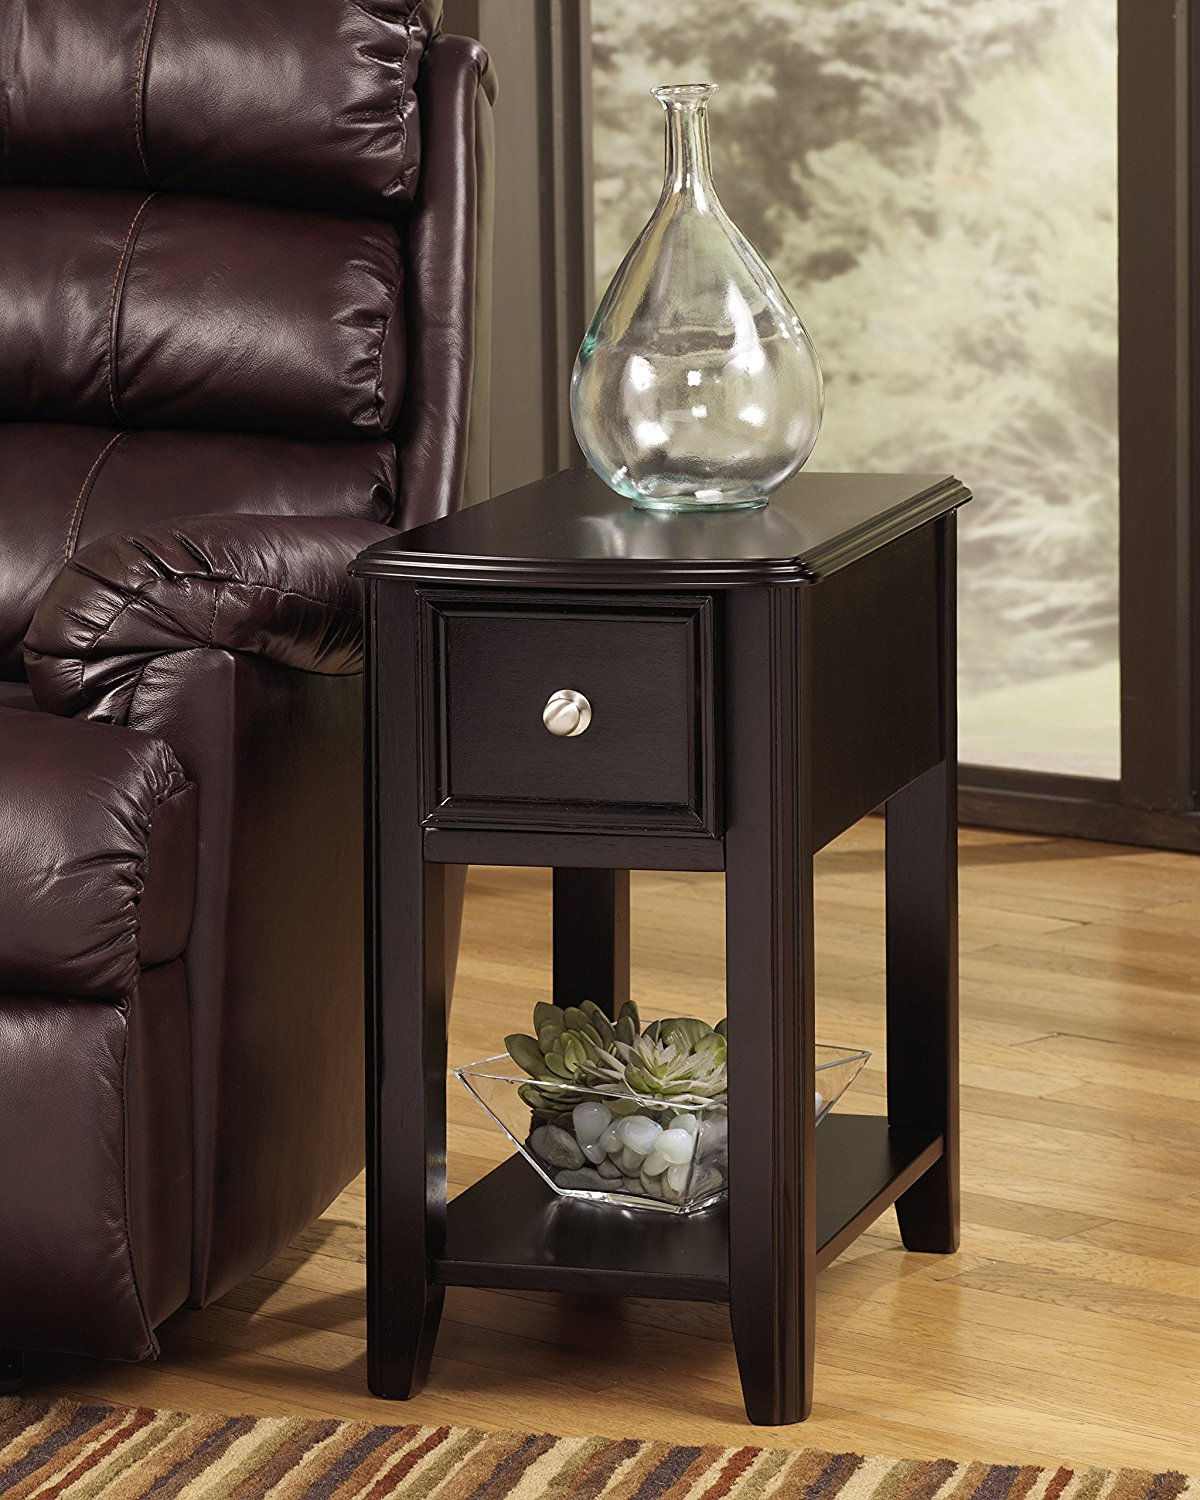 terrific small side table options for your living room ashley signature design breegin chair end low height accent furniture rectangular with nickel tone hardware and nautical